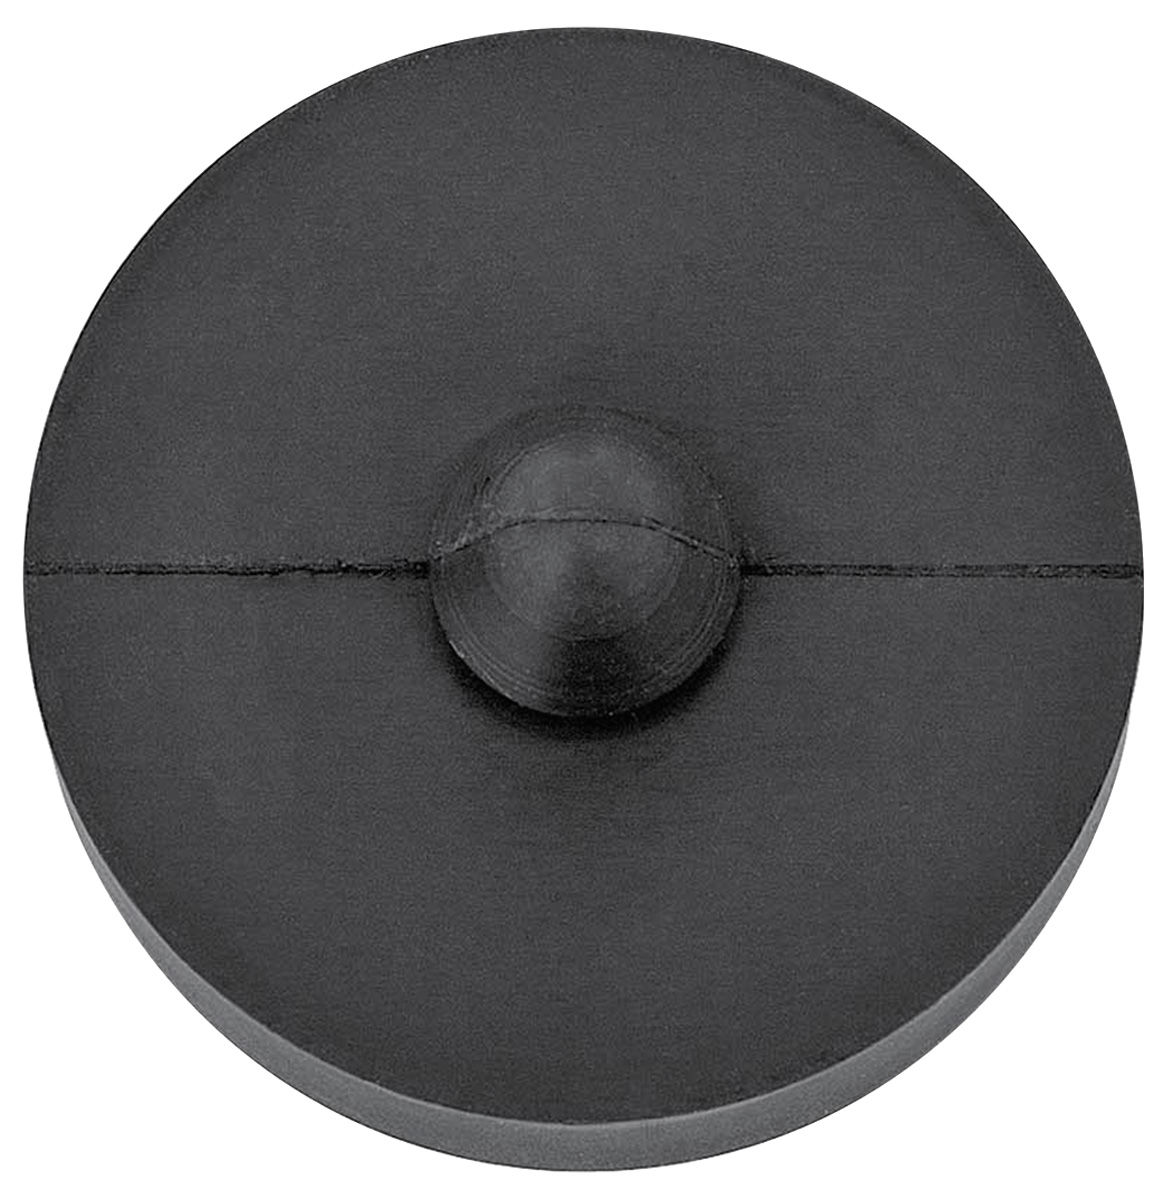 Glass Bump Stop, 70-75 A-body & 70-76 Fullsize, 70-78 Eldo, Front Door